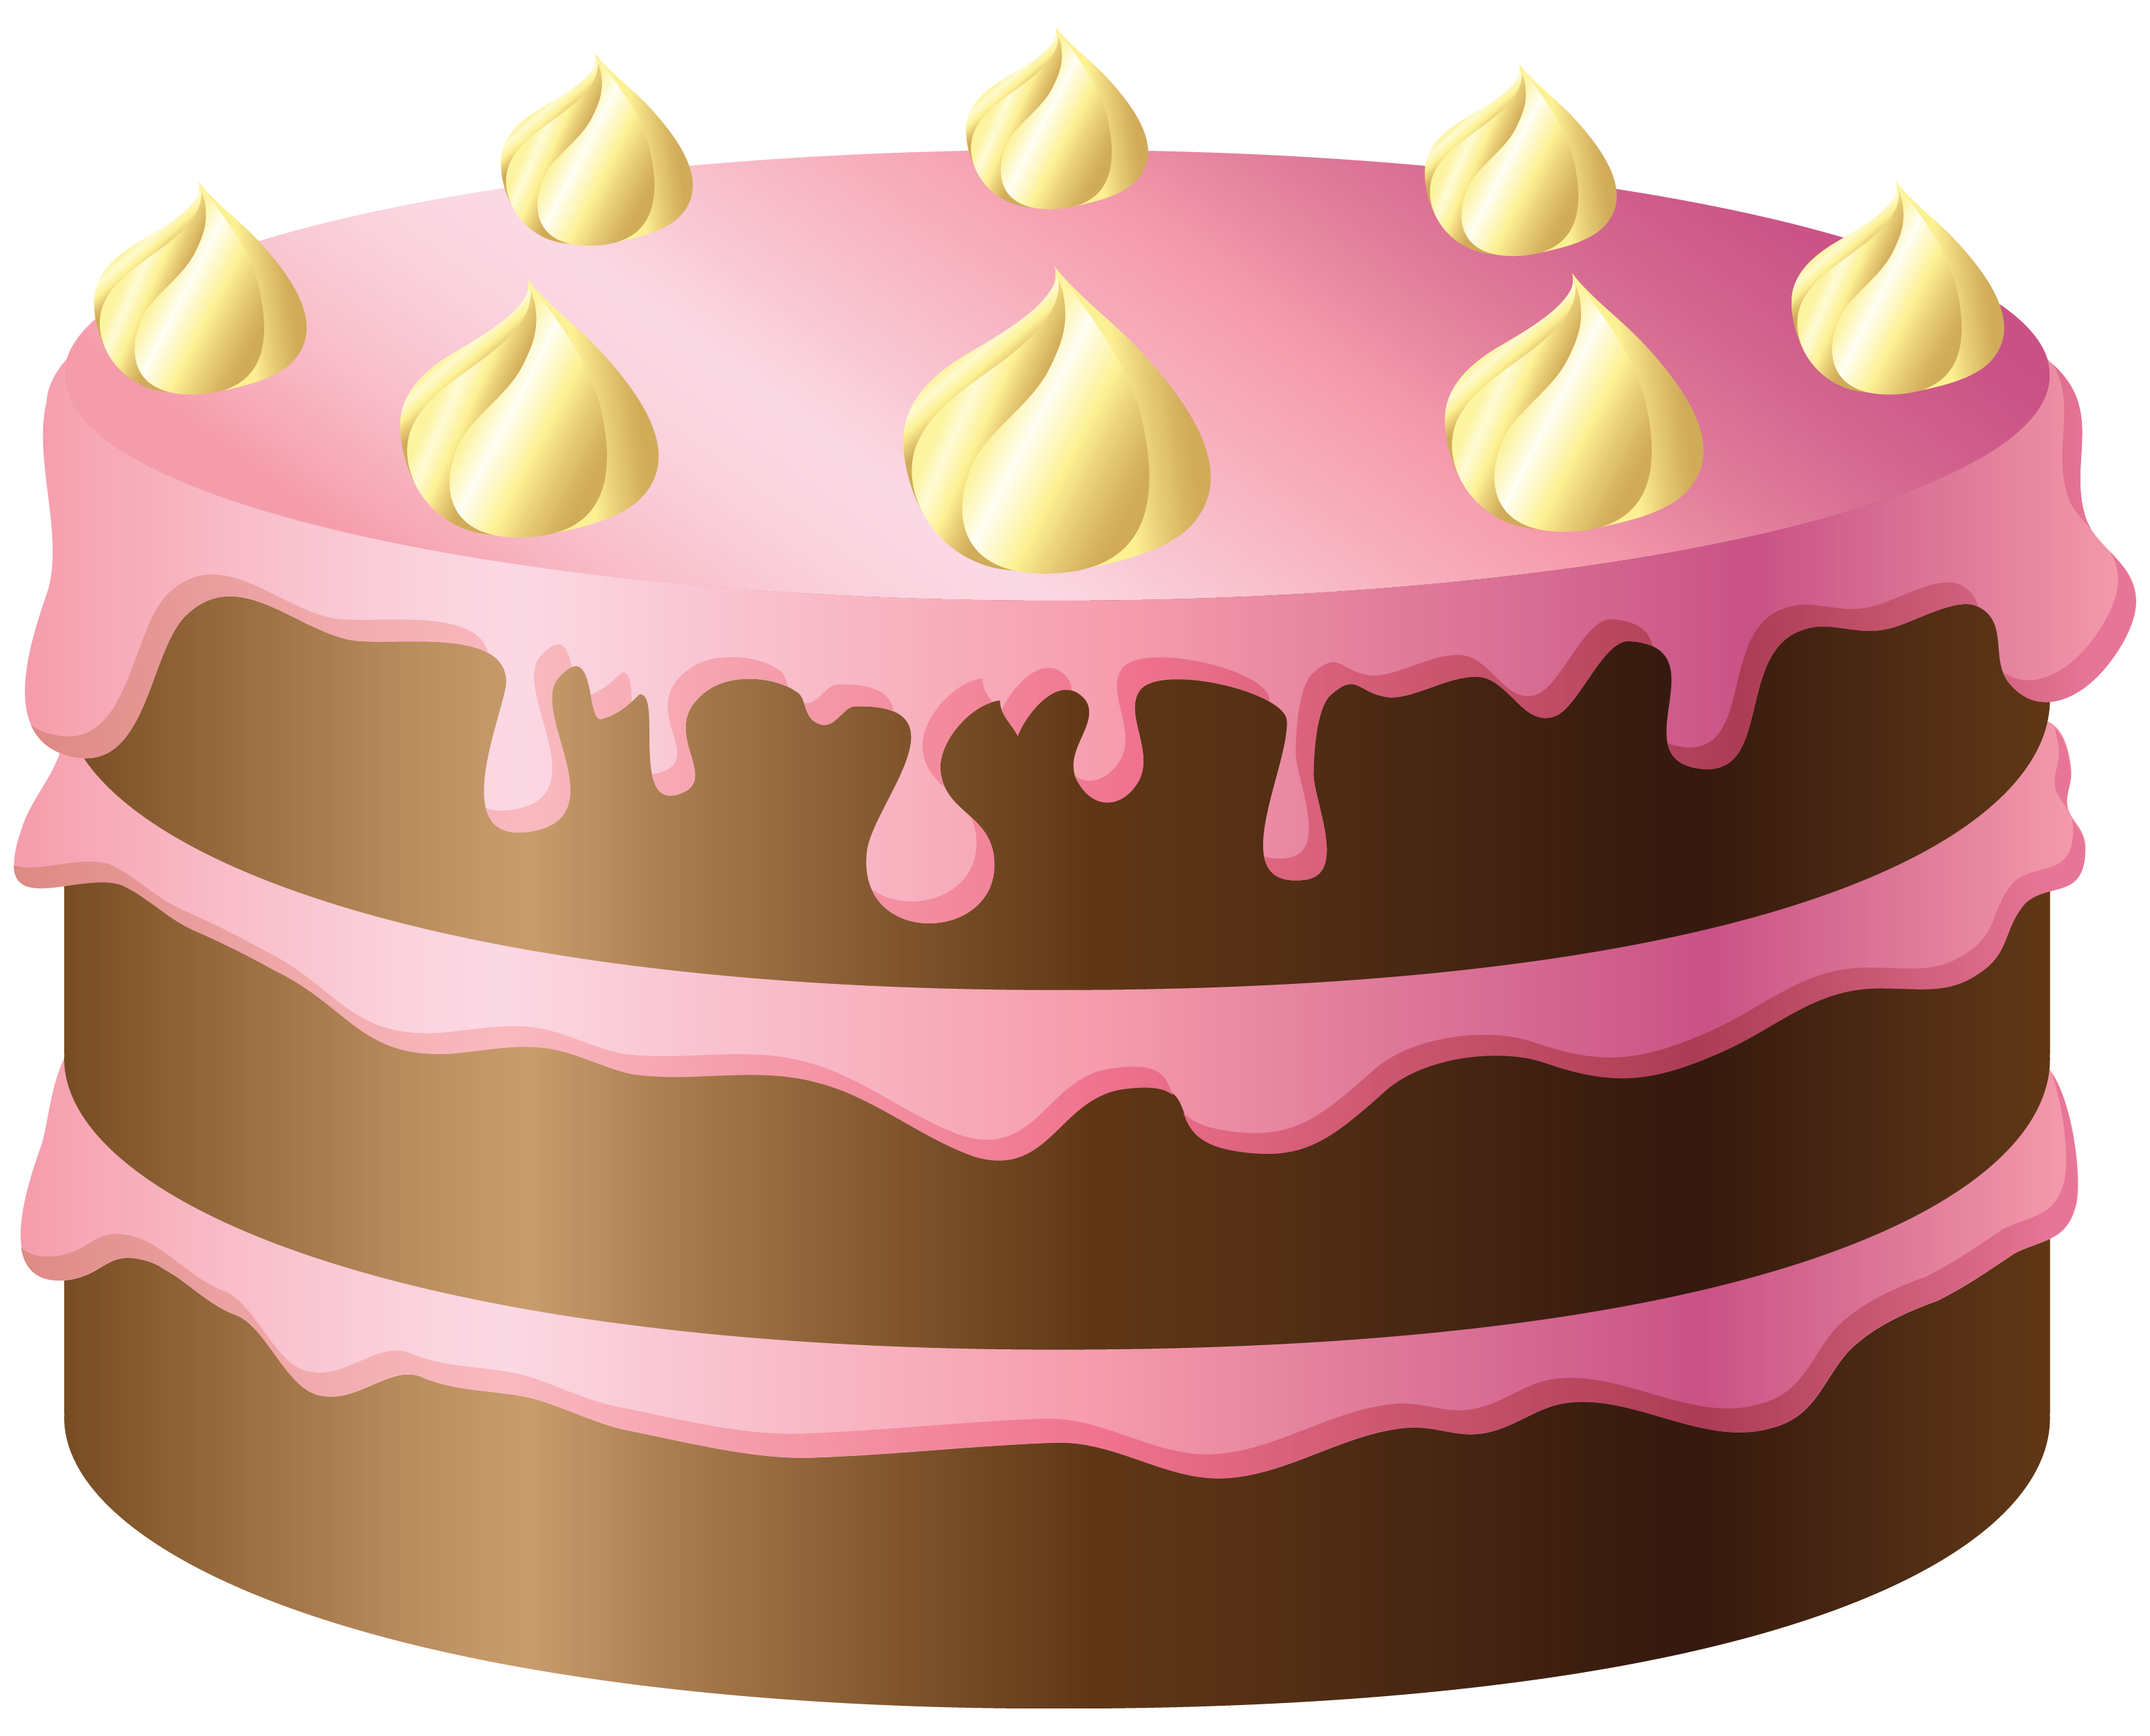 Dessert chocolate clip arts. Cake clipart jpg black and white library